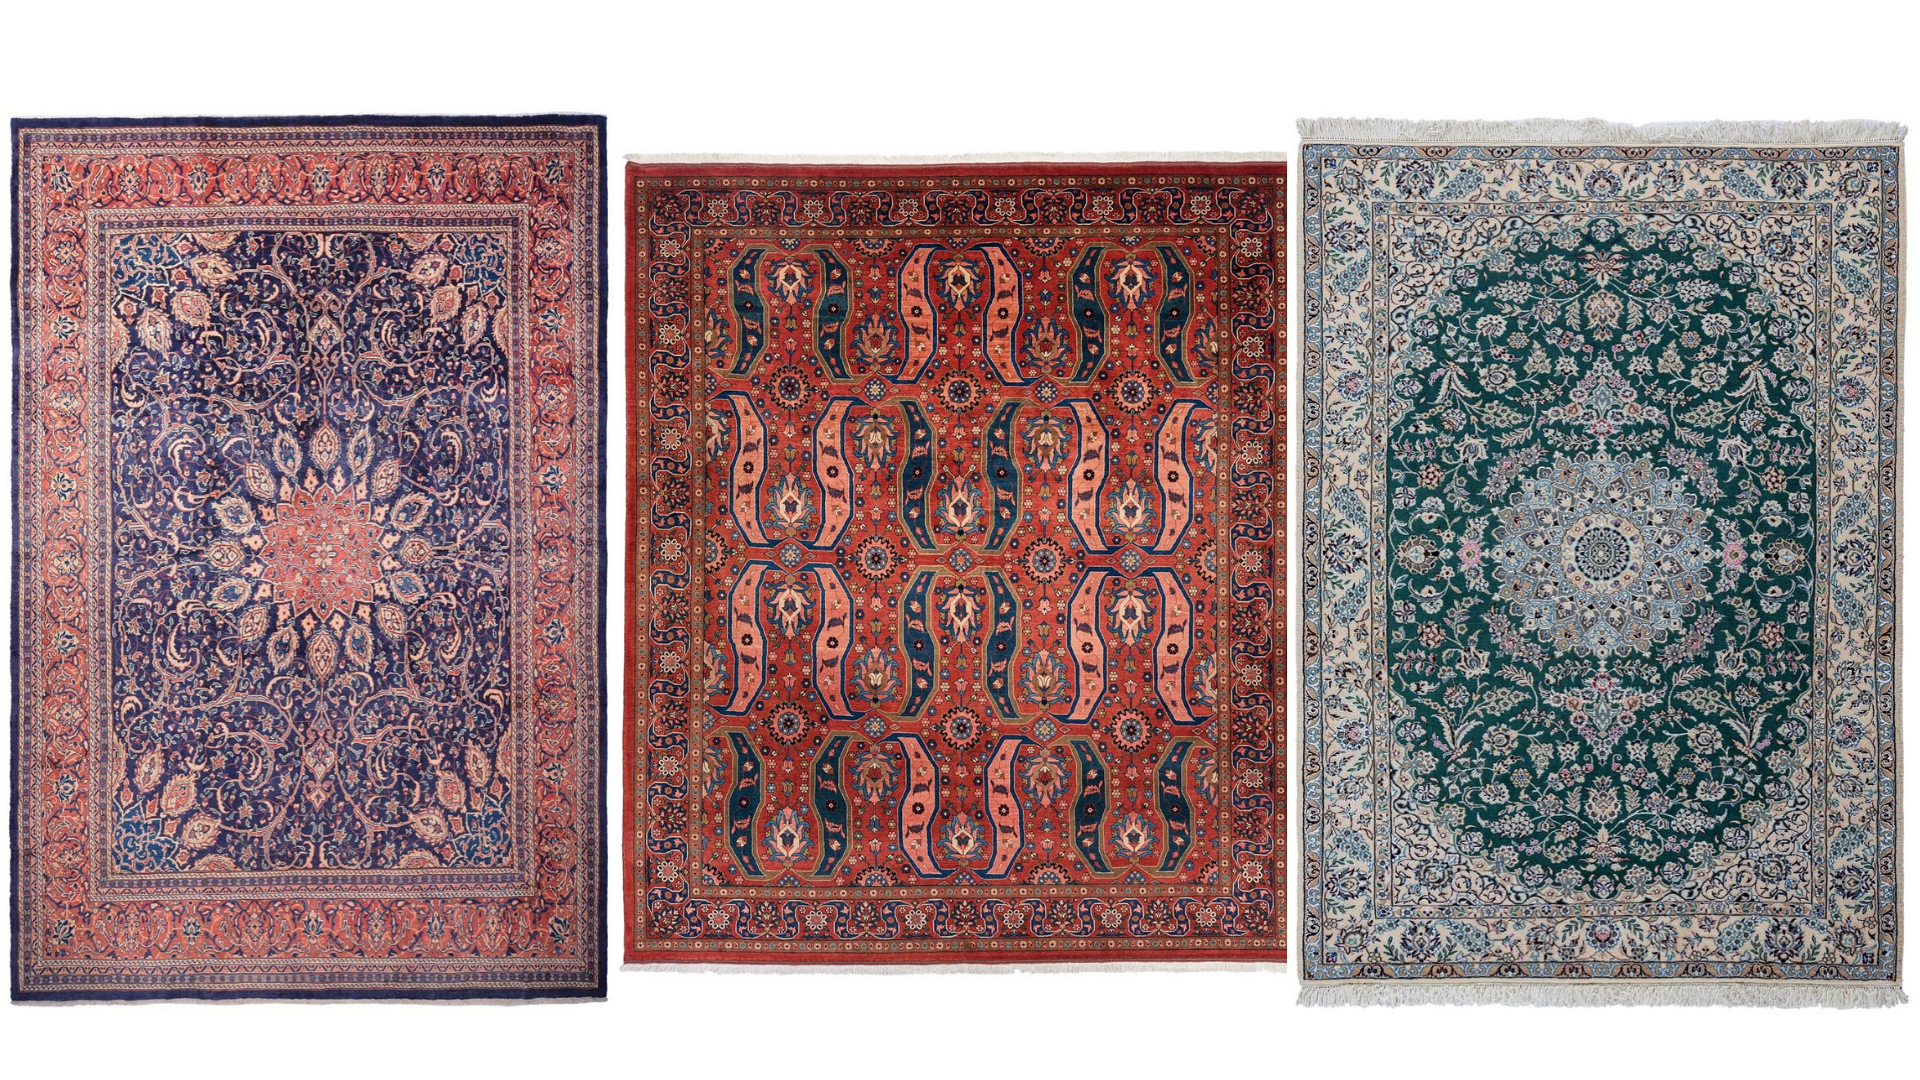 Perisan rugs, oriental rugs, london rugs, uk rugs, interior design, design ideas, design accessories, home accessories